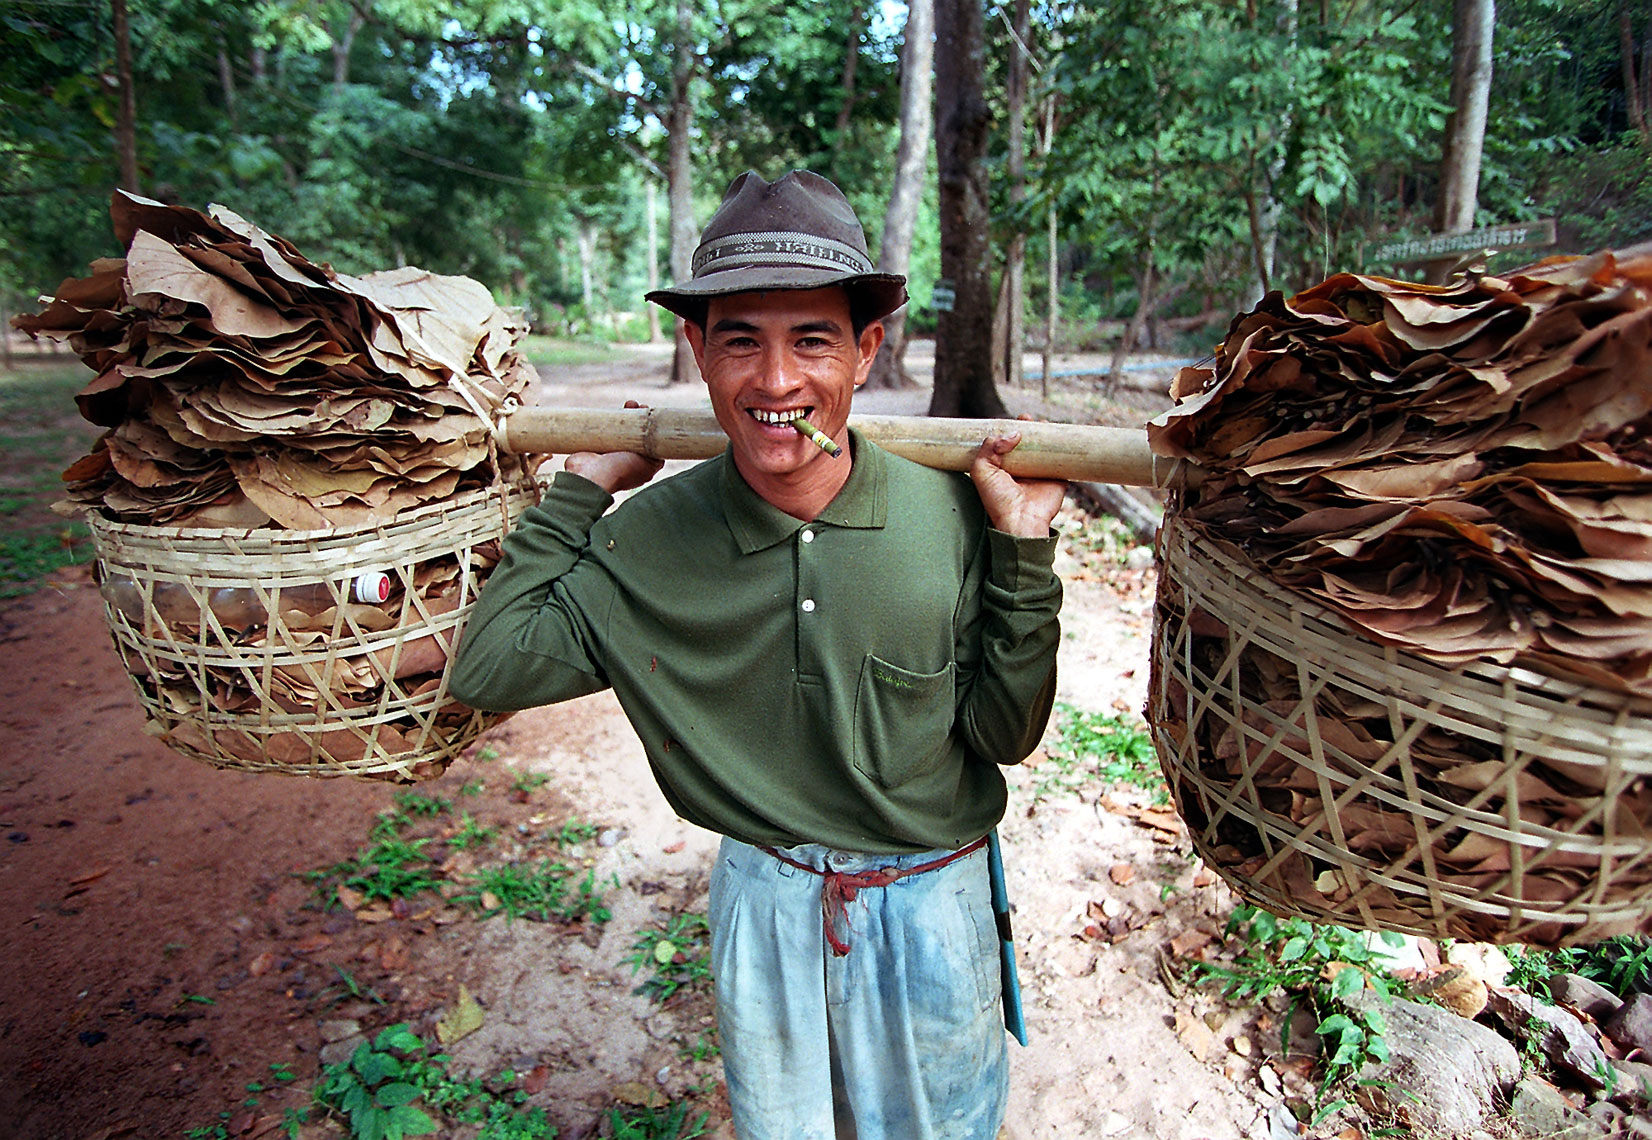 Thai-guy-with-baskets-of-leaves